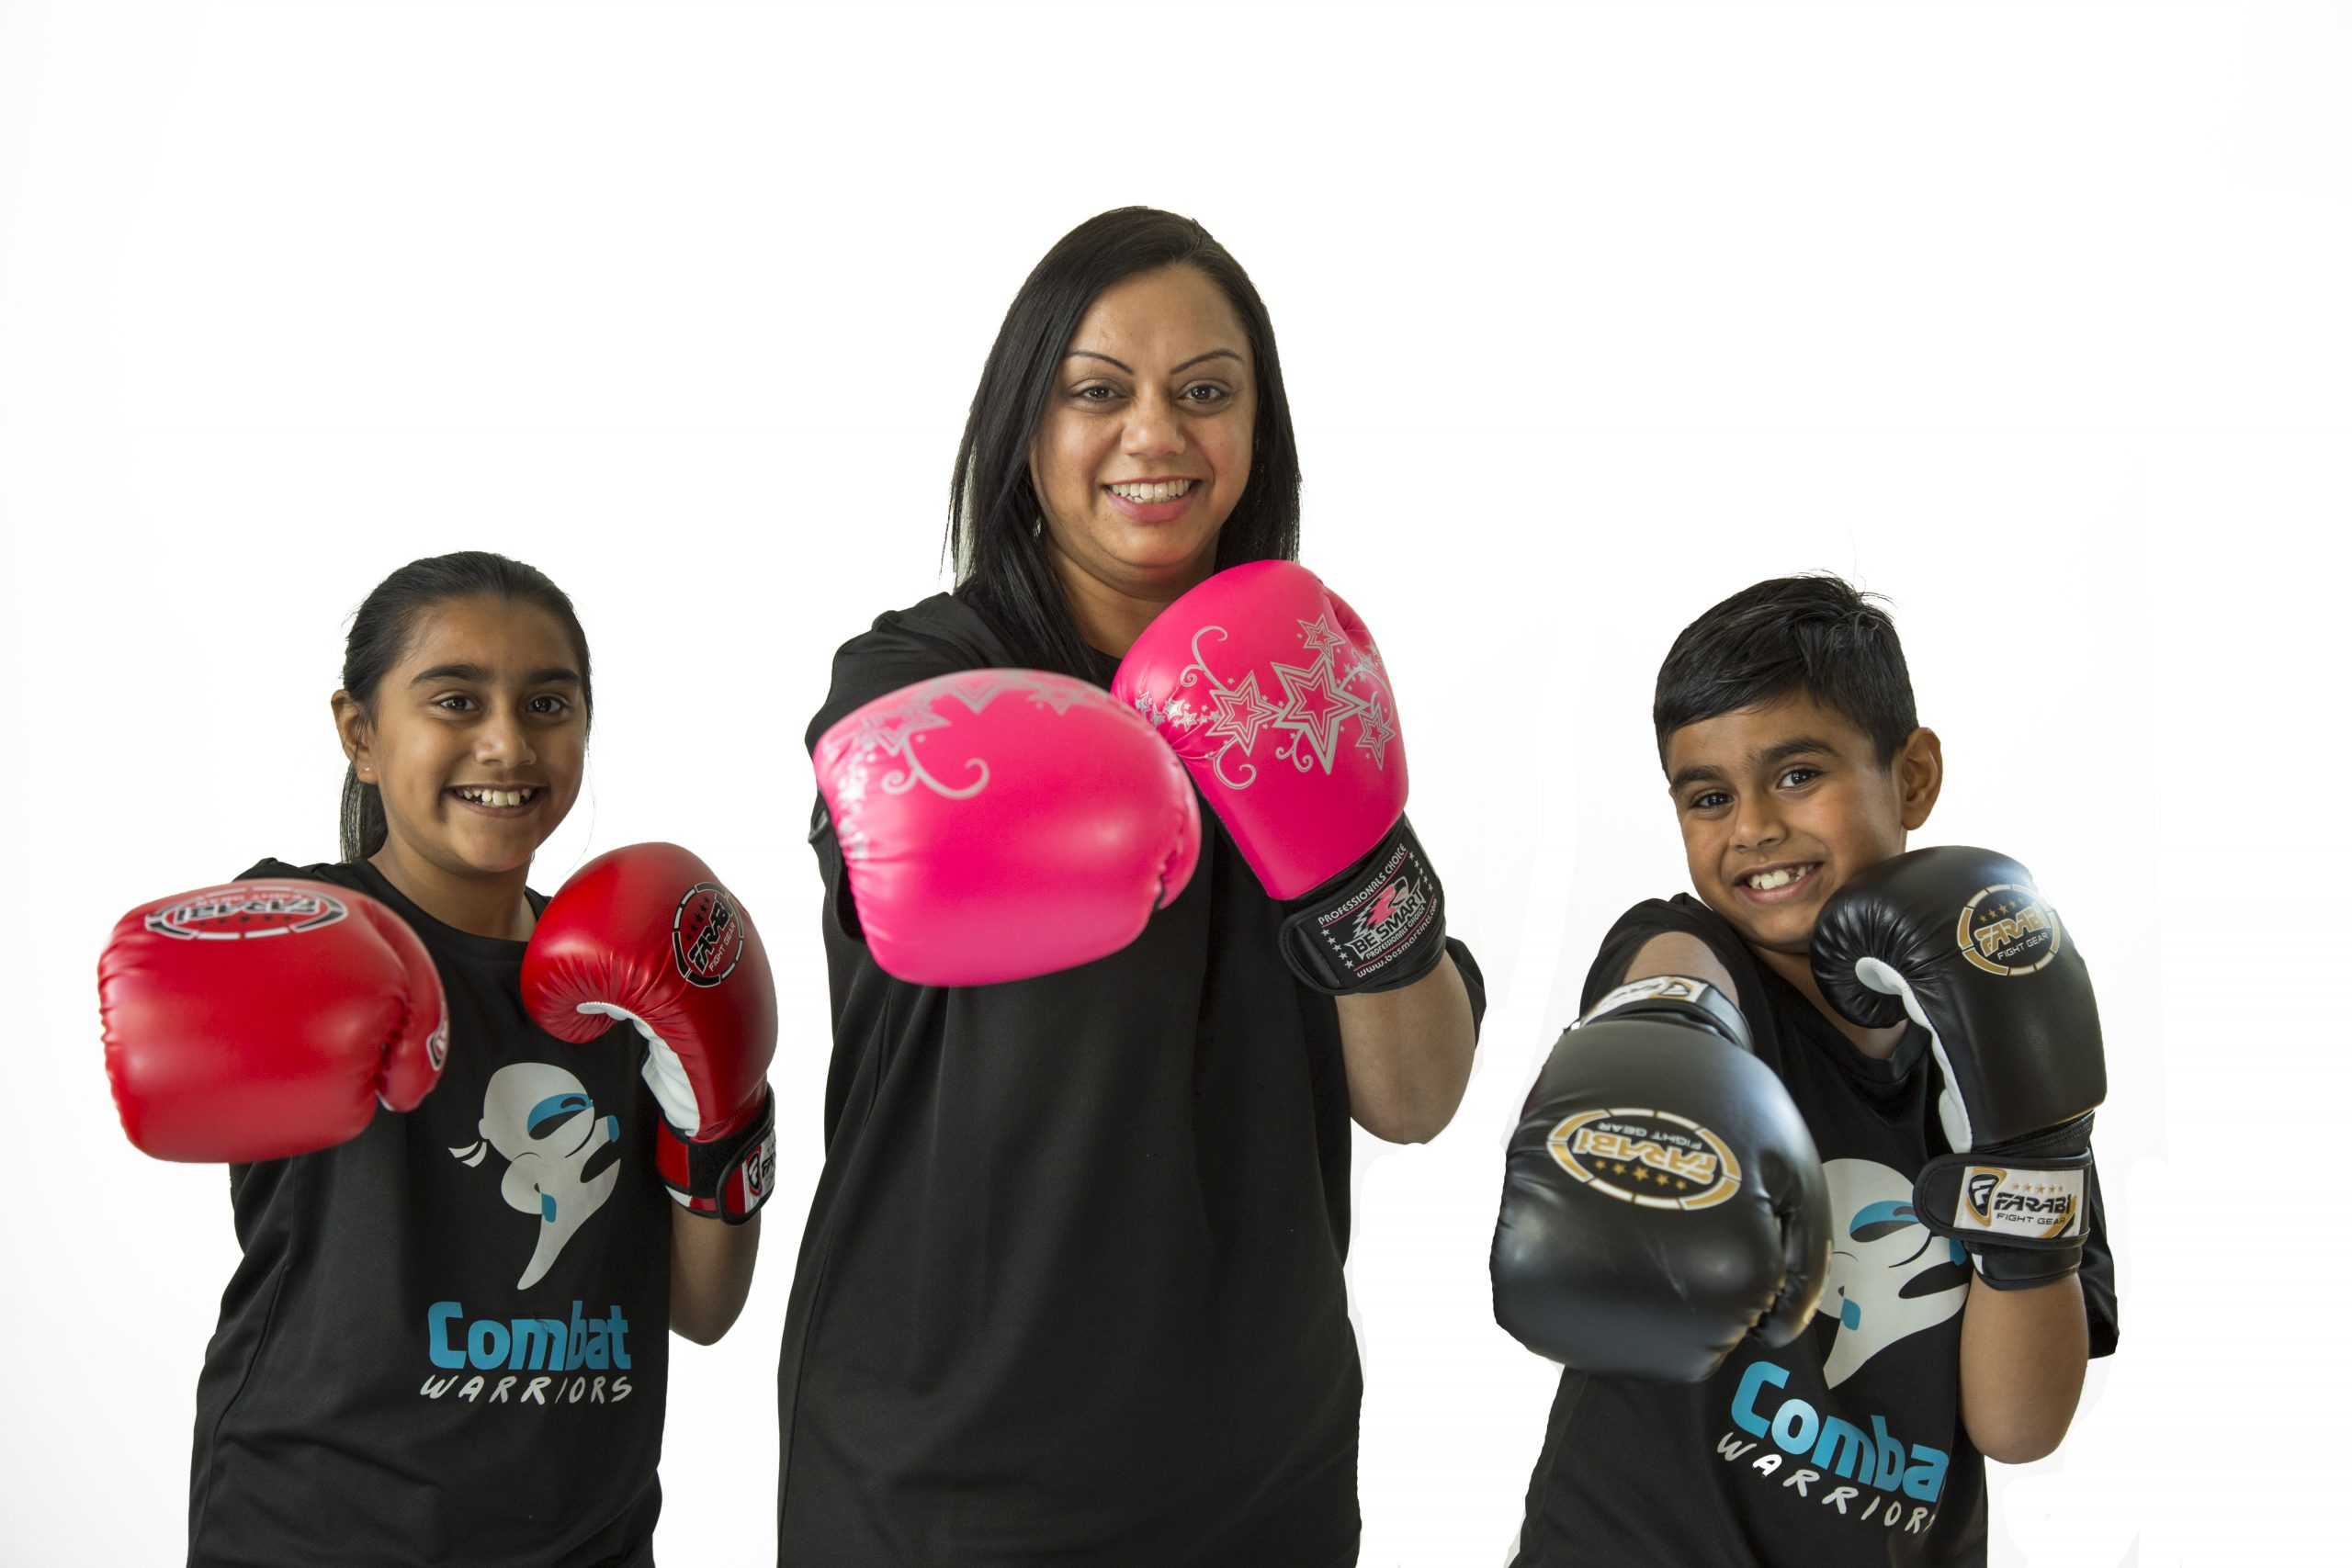 Family Training Together In Martial Arts